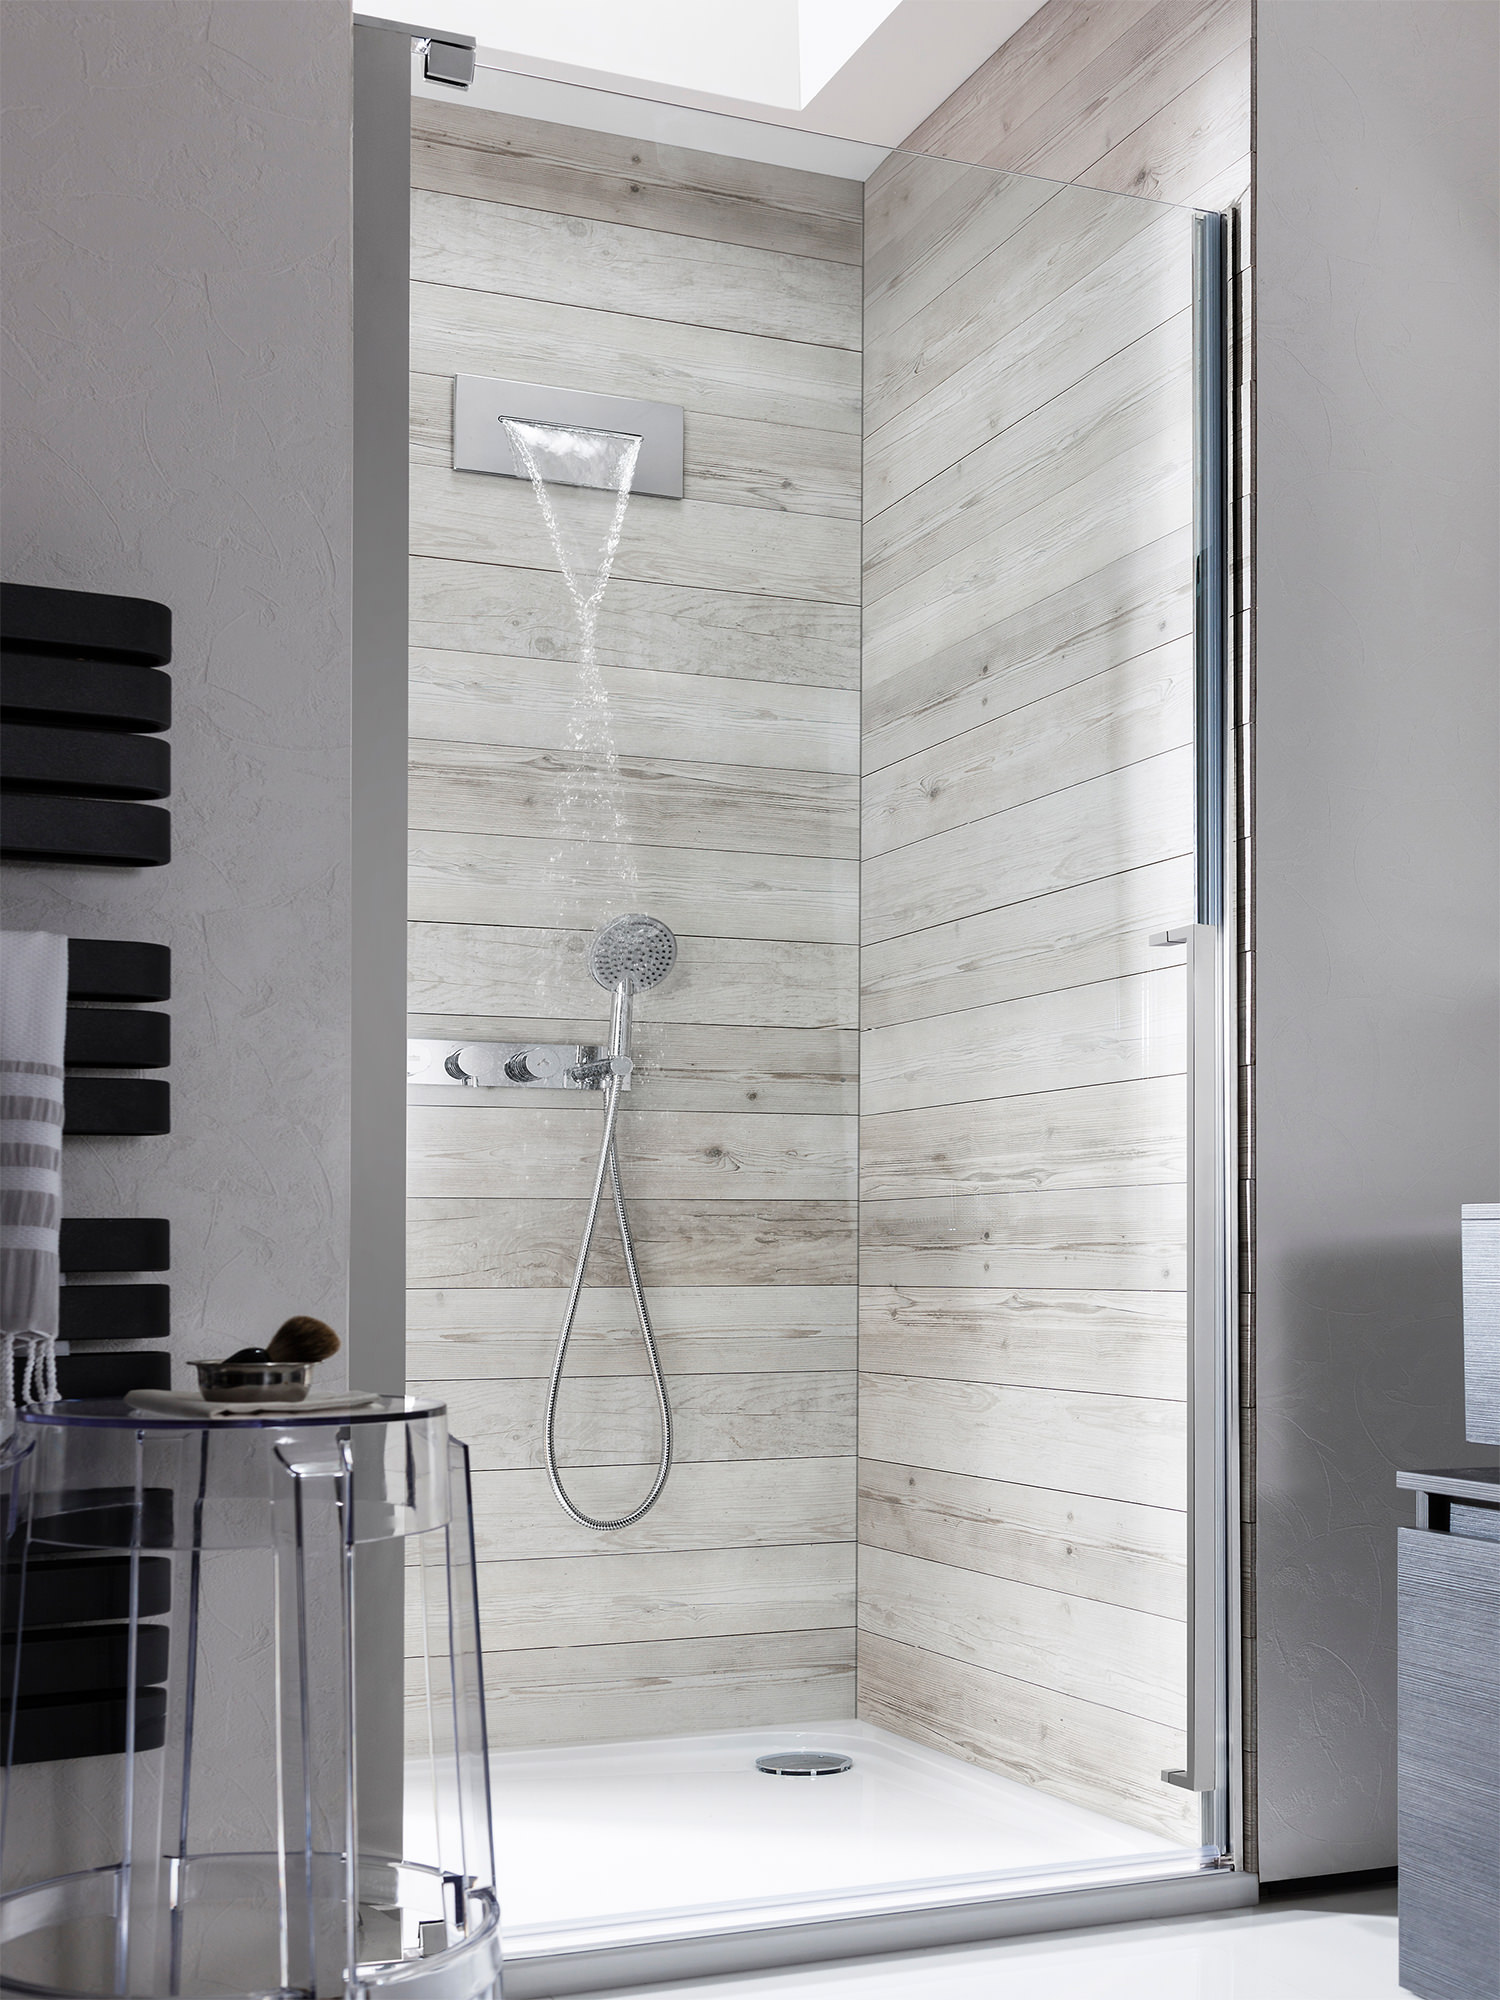 Waterfall Shower Ideas Crosswater Zest Shower Bath Waterfall Filler Tap Zt0370wc